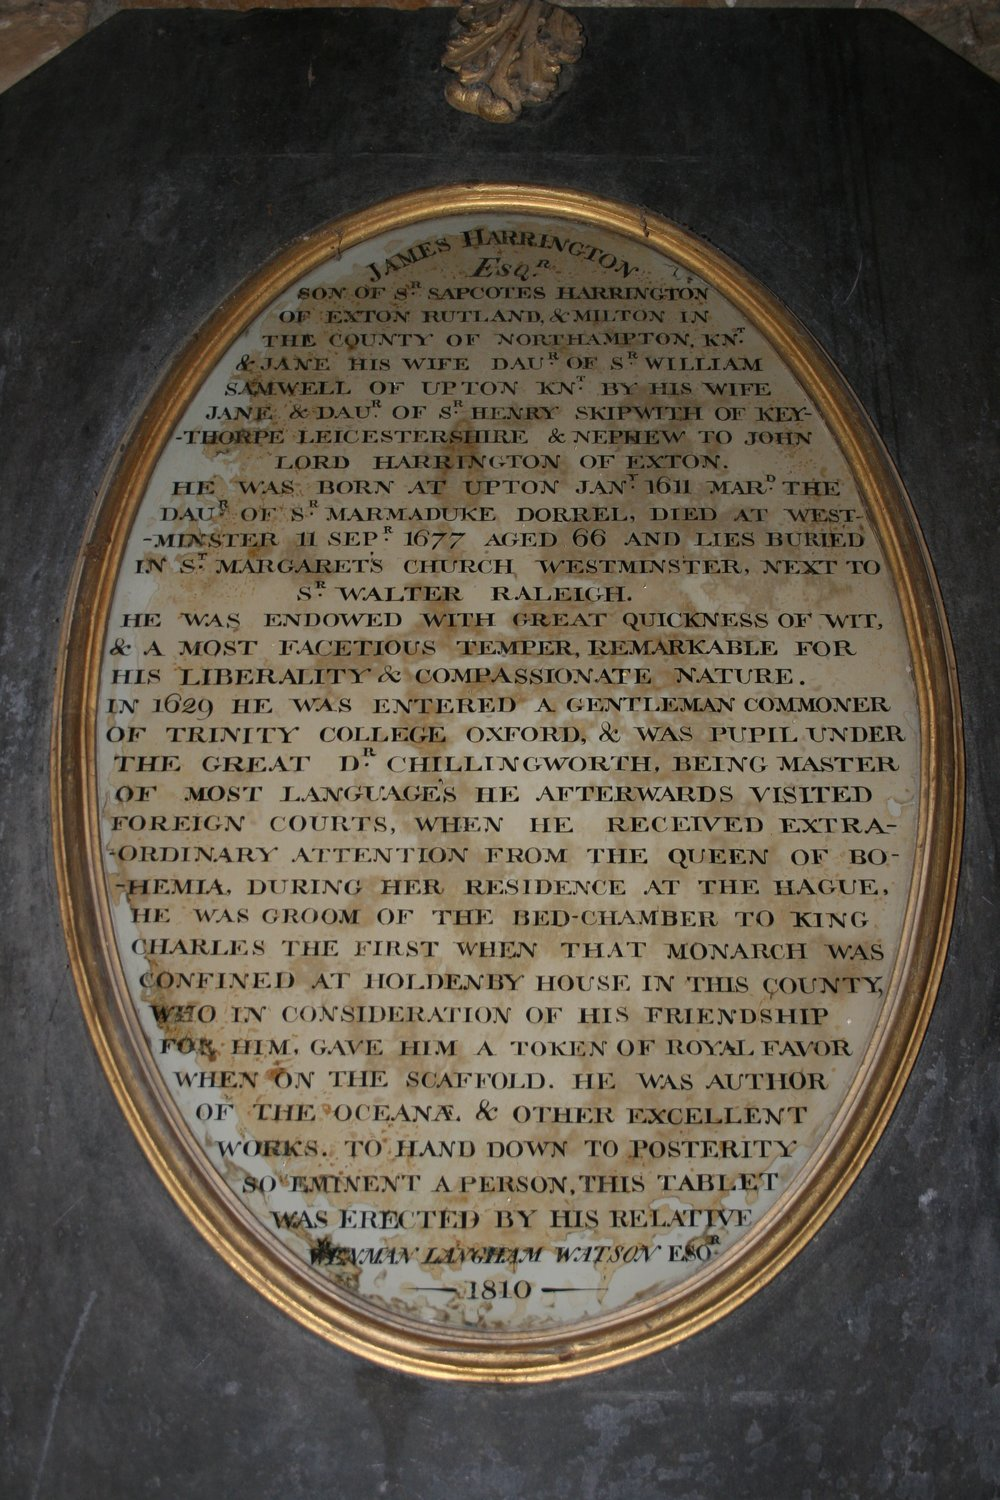 Plaque commemorating James Harrington in Upton Church, Northants. Photograph by John Gurney.